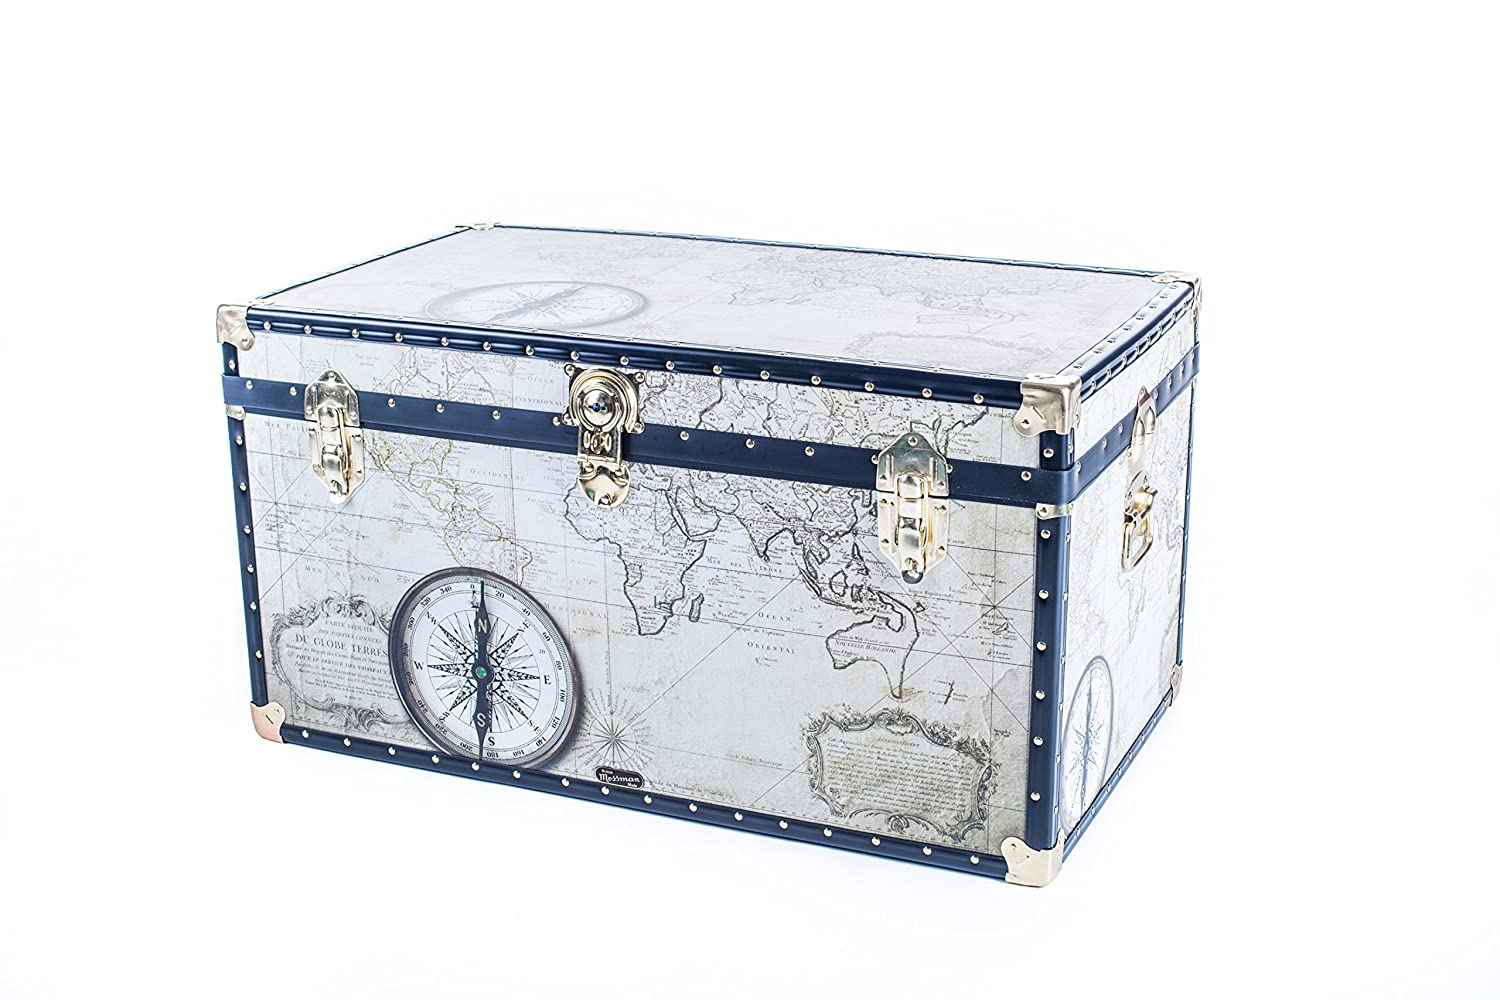 Mossman Original TUCK BOX Flip Lock ATLAS Trunk Storage Box Chest Steamer Case Home Furniture British Made